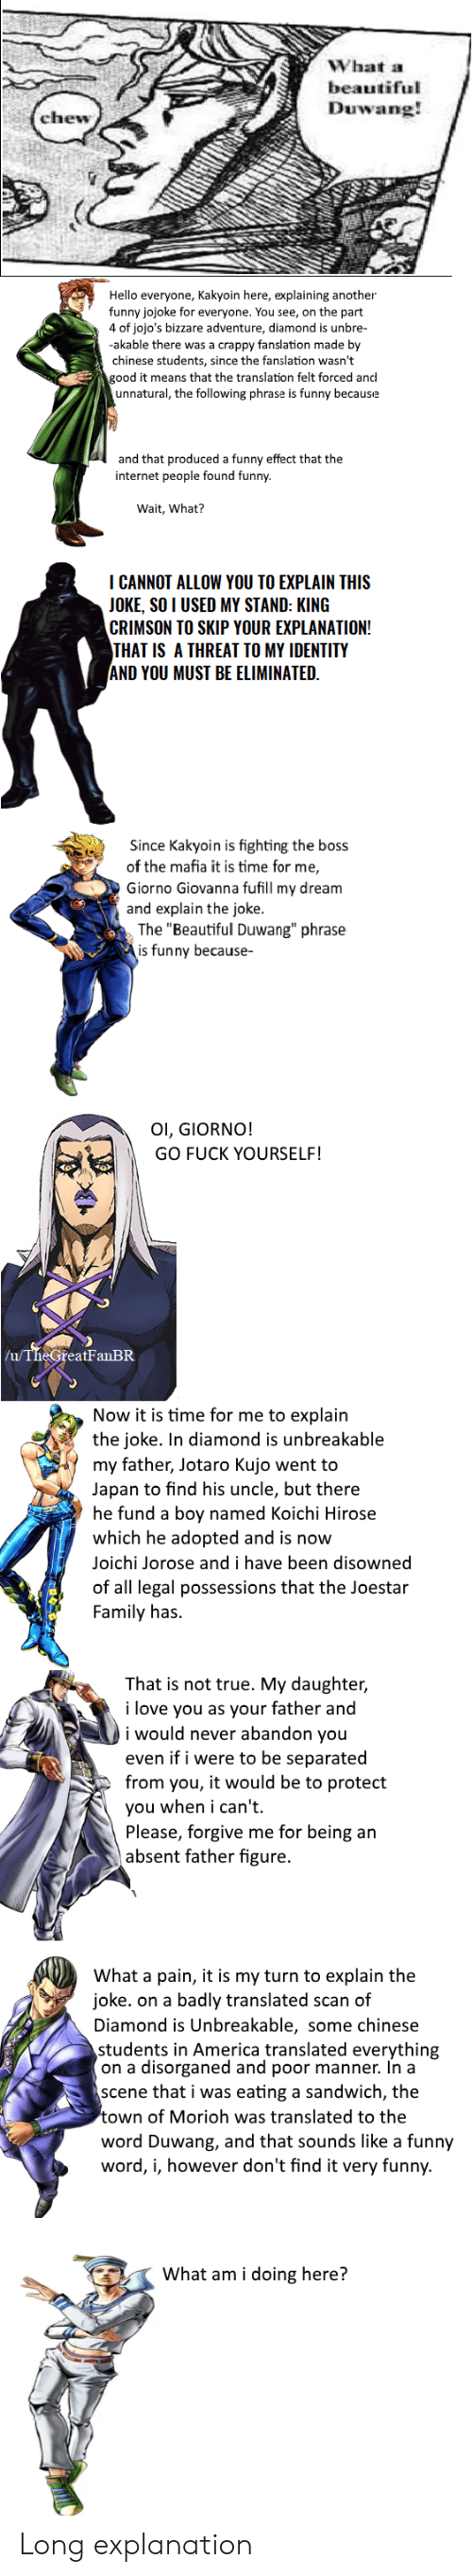 """What A Beautiful Duwang: What a  beautiful  Duwang!  chew  Hello everyone, Kakyoin here, explaining another  funny jojoke for everyone. You see, on the part  4 of jojo's bizzare adventure, diamond is unbre-  -akable there was a crappy fanslation made by  chinese students, since the fanslation wasn't  good it means that the translation felt forced and  unnatural, the following phrase is funny because  and that produced a funny effect that the  internet people found funny.  Wait, What?  I CANNOT ALLOW YOU TO EXPLAIN THIS  JOKE, SO I USED MY STAND: KING  CRIMSON TO SKIP YOUR EXPLANATION!  THAT IS A THREAT TO MY IDENTITY  AND YOU MUST BE ELIMINATED.  Since Kakyoin is fighting the boss  of the mafia it is time for me,  Giorno Giovanna fufill my dream  and explain the joke.  The """"Beautiful Duwang"""" phrase  is funny because-  Ol, GIORNO!  GO FUCK YOURSELF!  /u/TheGreatFanBR  Now it is time for me to explain  the joke. In diamond is unbreakable  my father, Jotaro Kujo went to  Japan to find his uncle, but there  he fund a boy named Koichi Hirose  which he adopted and is now  Joichi Jorose and i have been disowned  of all legal possessions that the Joestar  Family has.  That is not true. My daughter,  i love you as your father and  i would never abandon you  even if i were to be separated  from you, it would be to protect  you when i can't  Please, forgive me for being an  absent father figure.  What a pain, it is my turn to explain the  joke. on a badly translated scan of  Diamond is Unbreakable, some chinese  students in America translated everything  on a disorganed and poor manner. In a  scene that i was eating a sandwich, the  town of Morioh was translated to the  word Duwang, and that sounds like a funny  word, i, however don't find it very funny.  What am i doing here? Long explanation"""